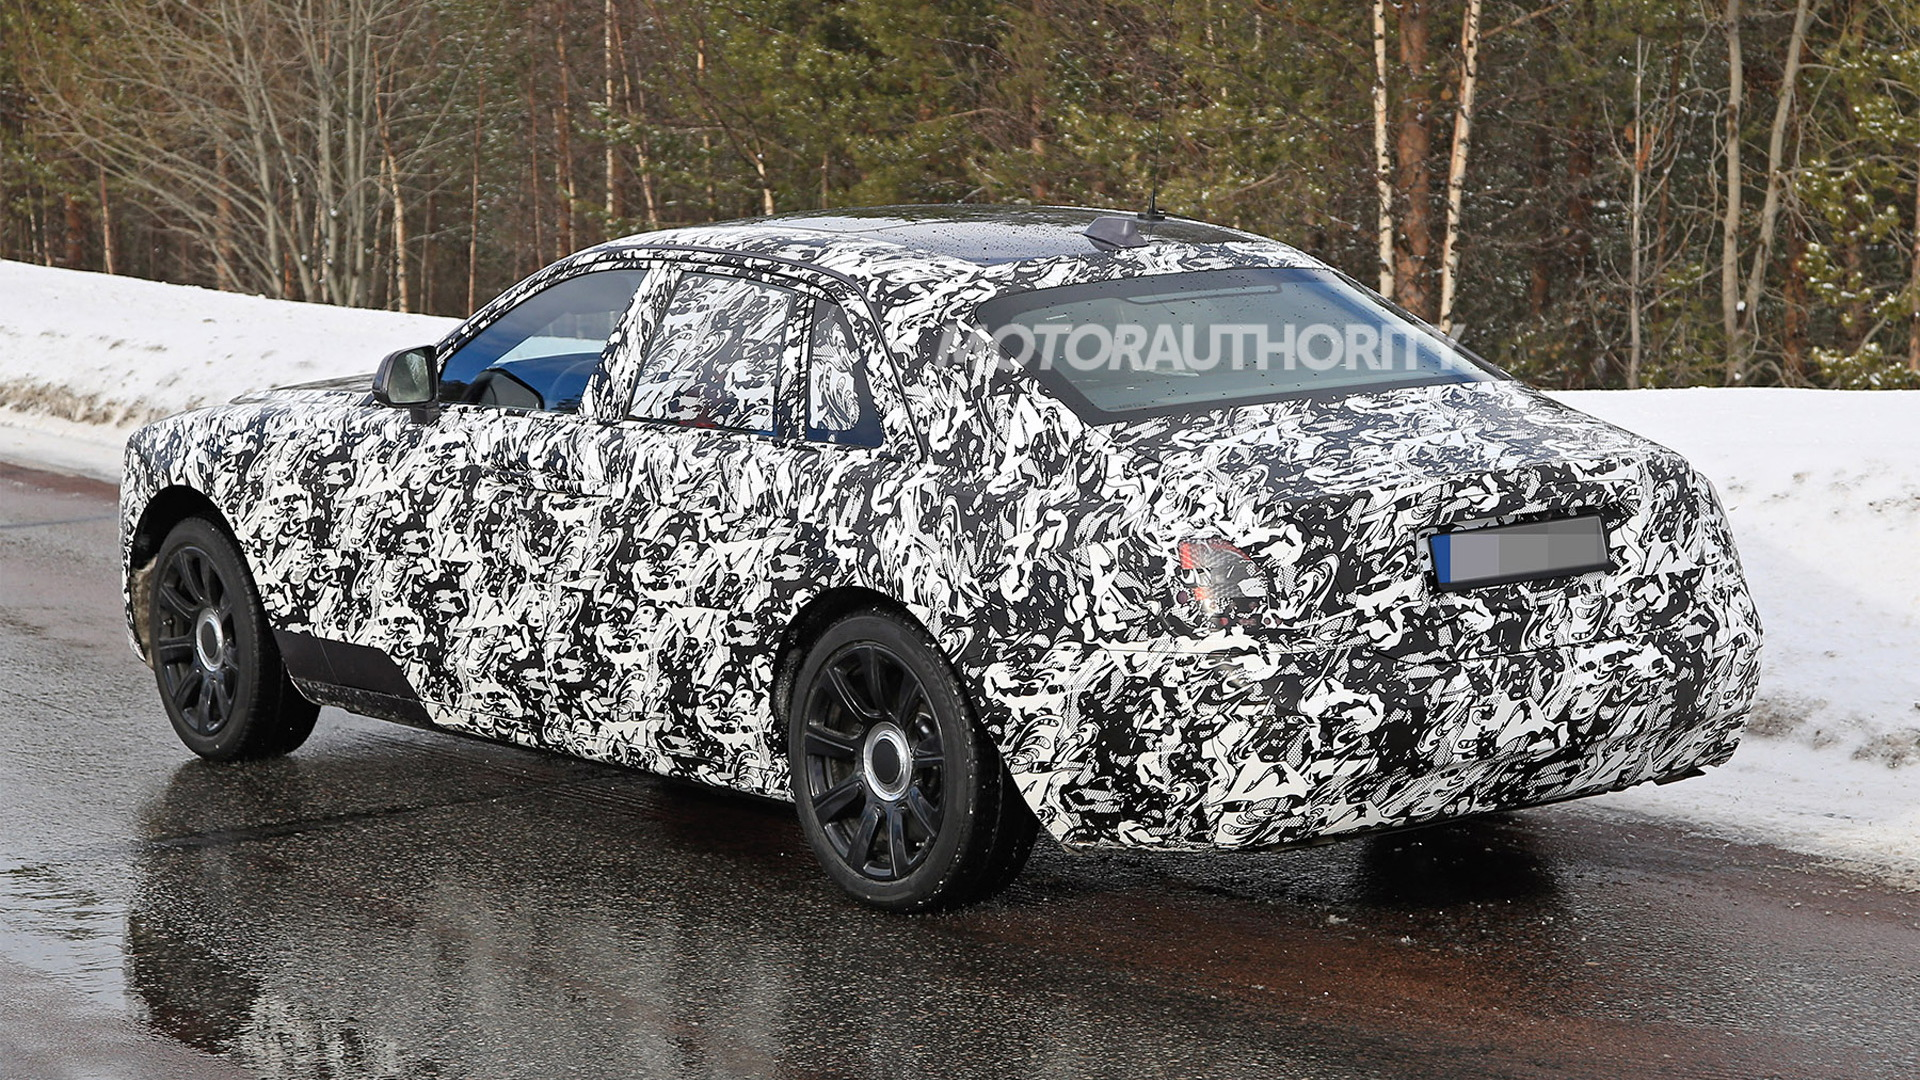 2021 Rolls-Royce Ghost spy shots - Photo credit: S. Baldauf/SB-Medien